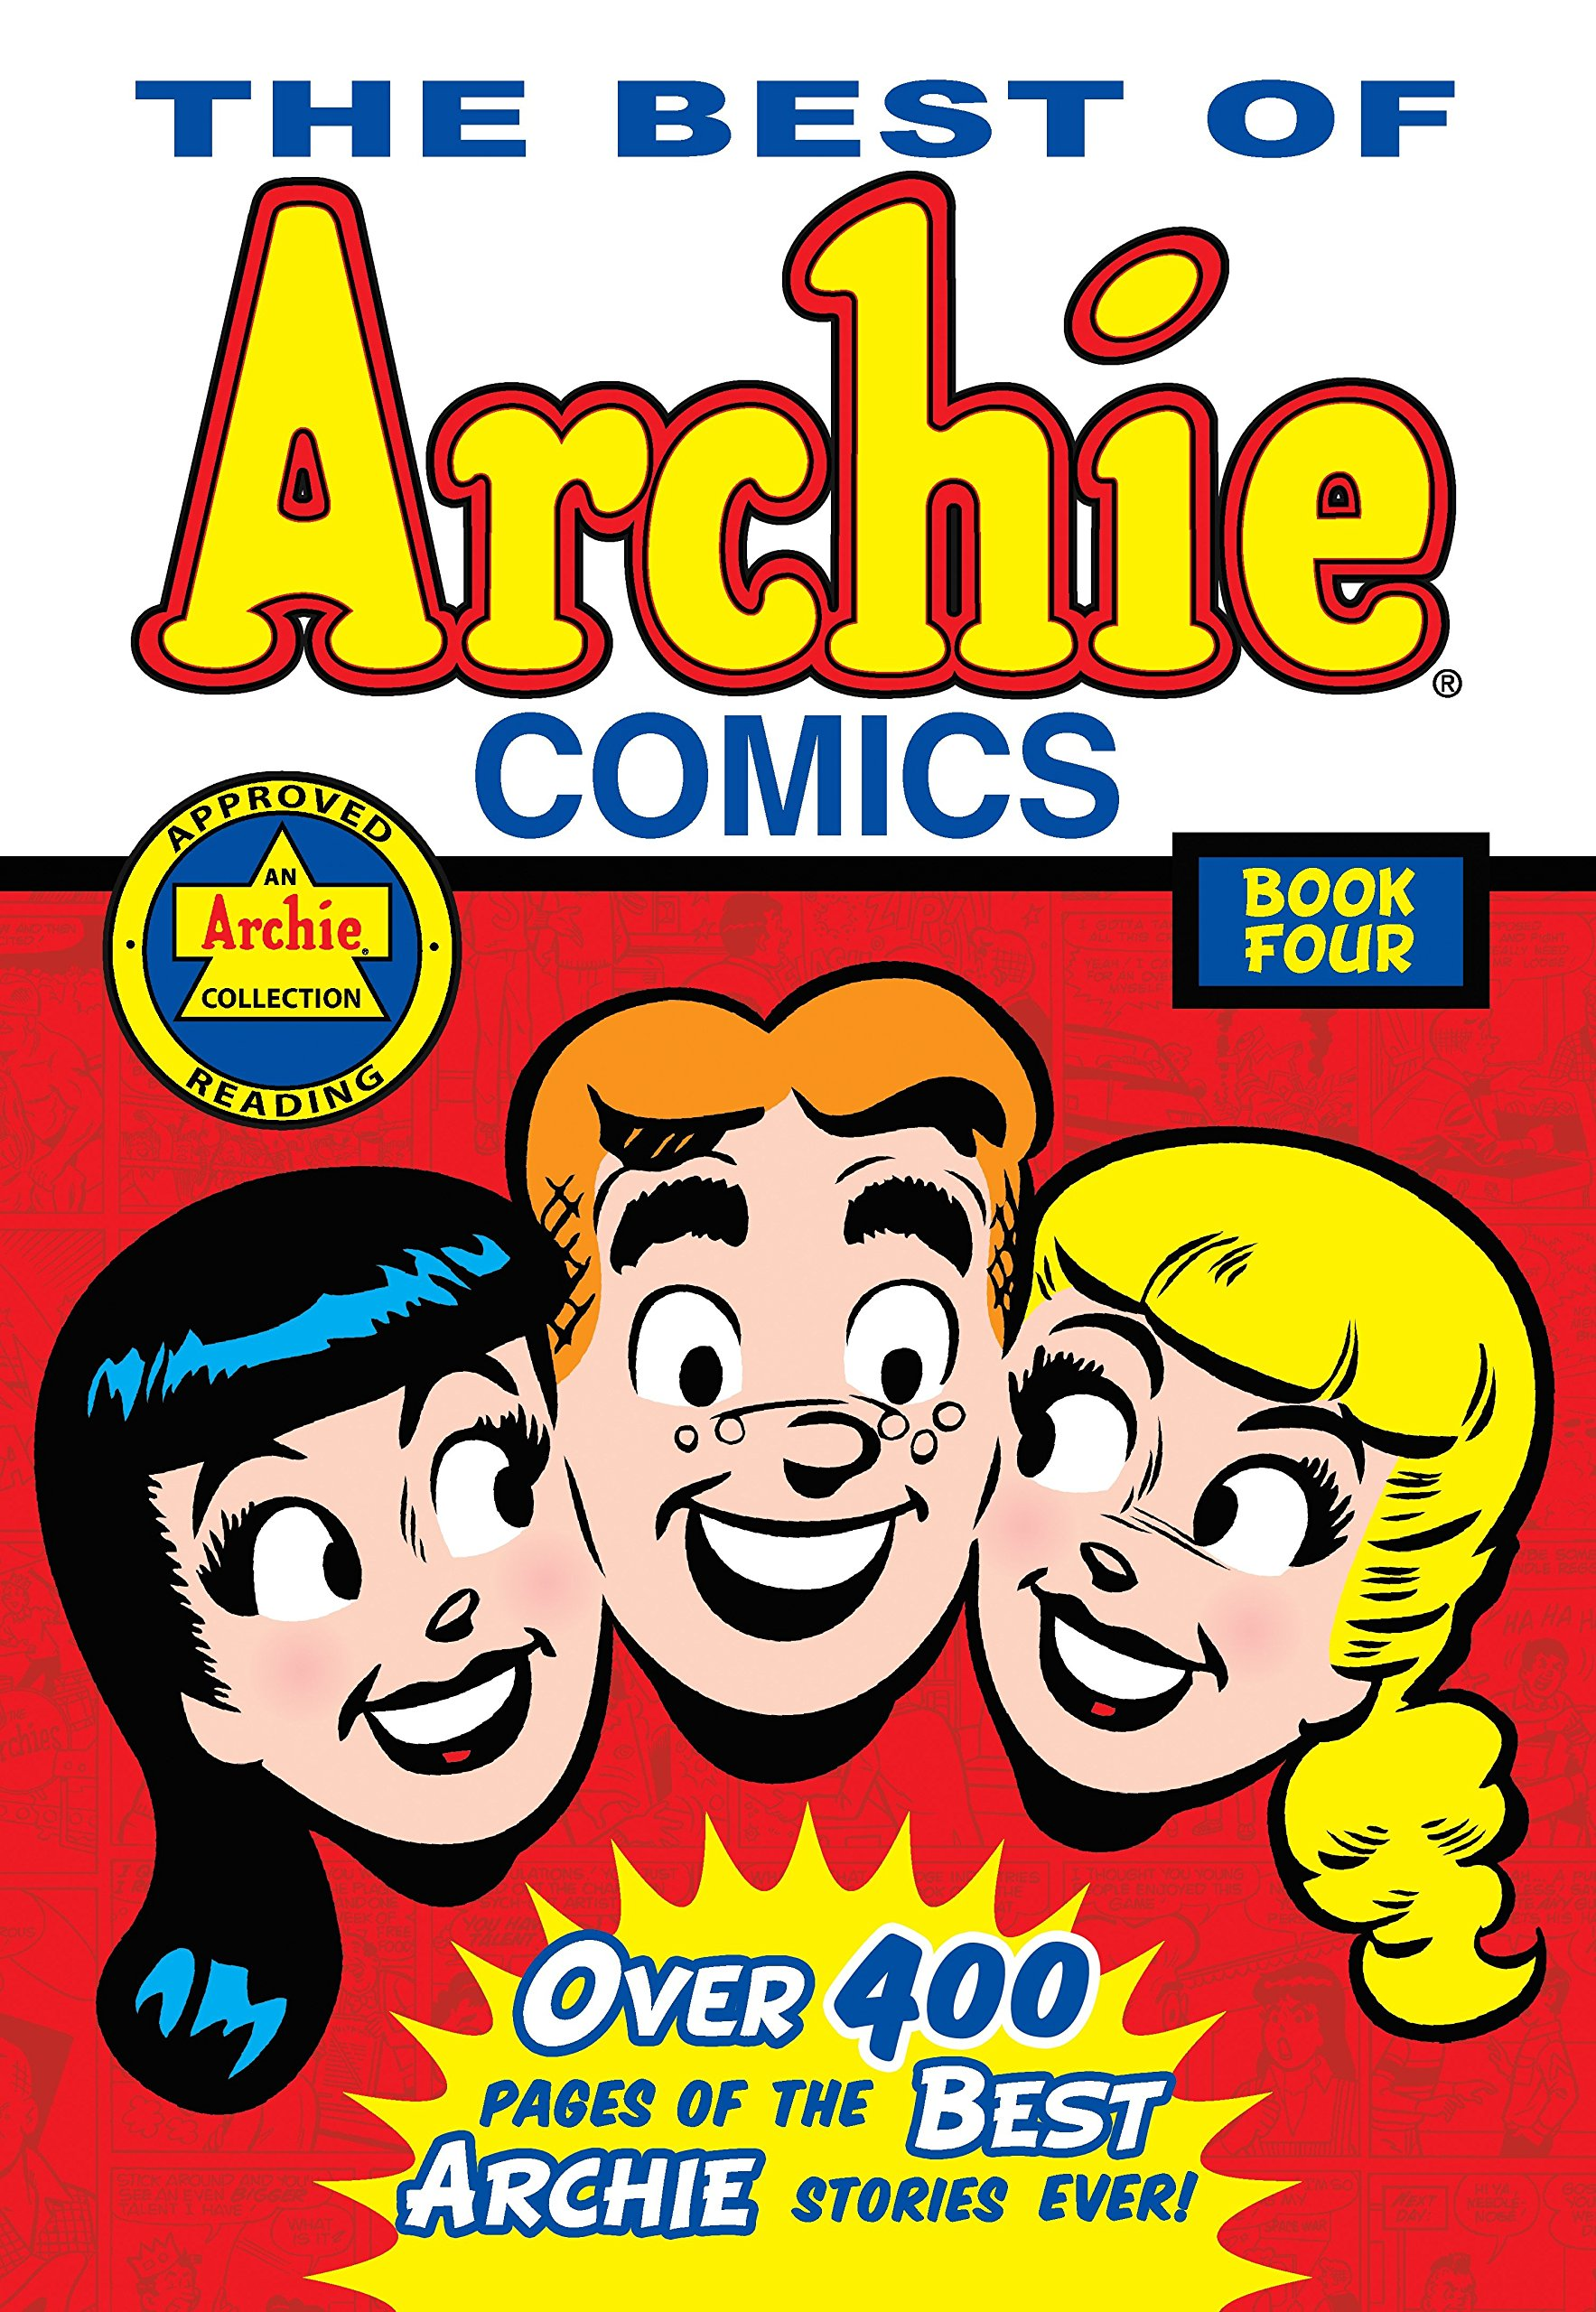 Amazon com: The Best of Archie Comics Book 4 (9781619889422